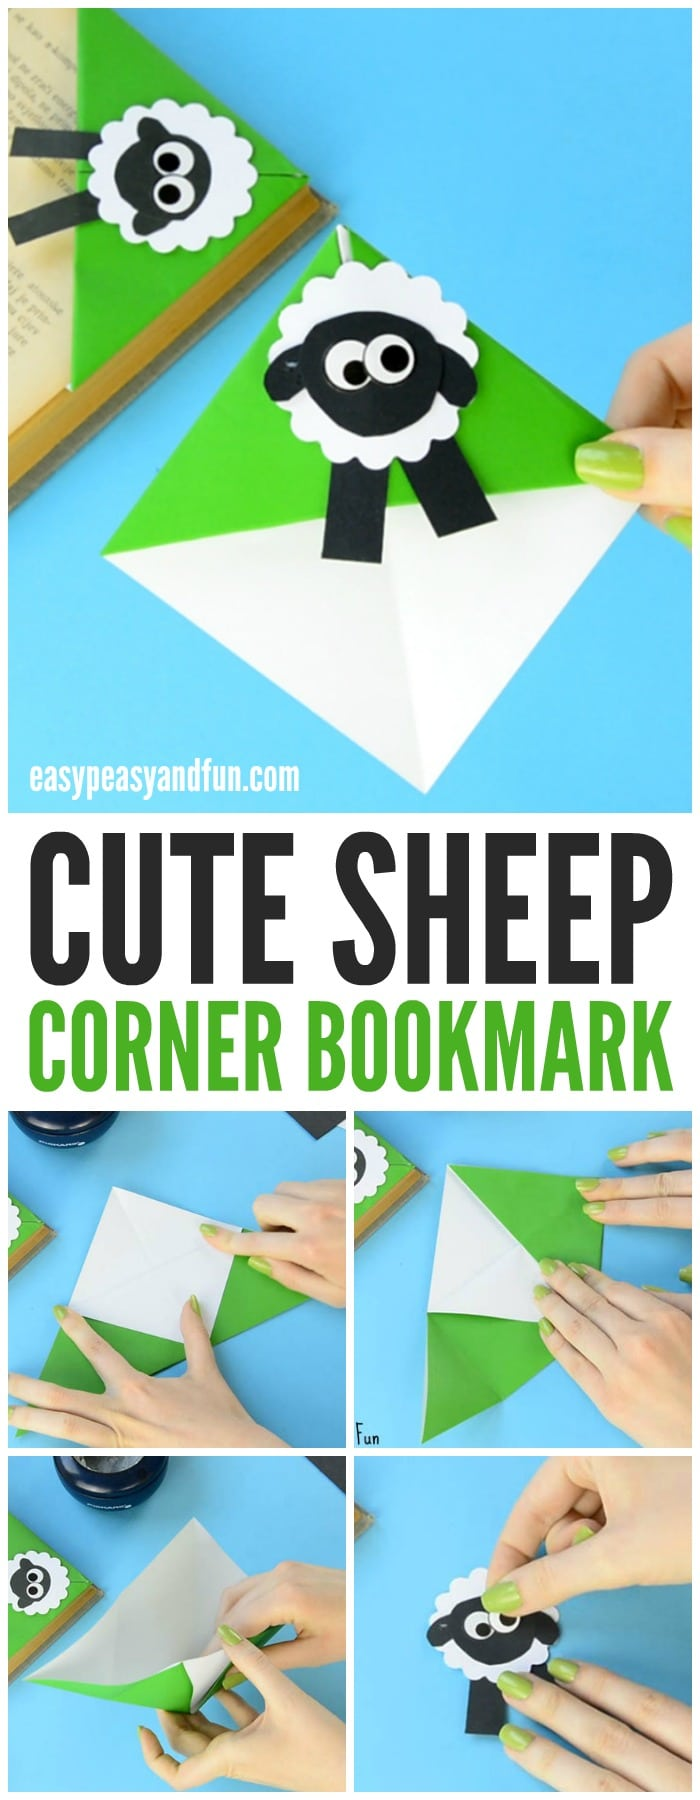 Cute Sheep Corner Bookmark Paper Craft for Kids to Make